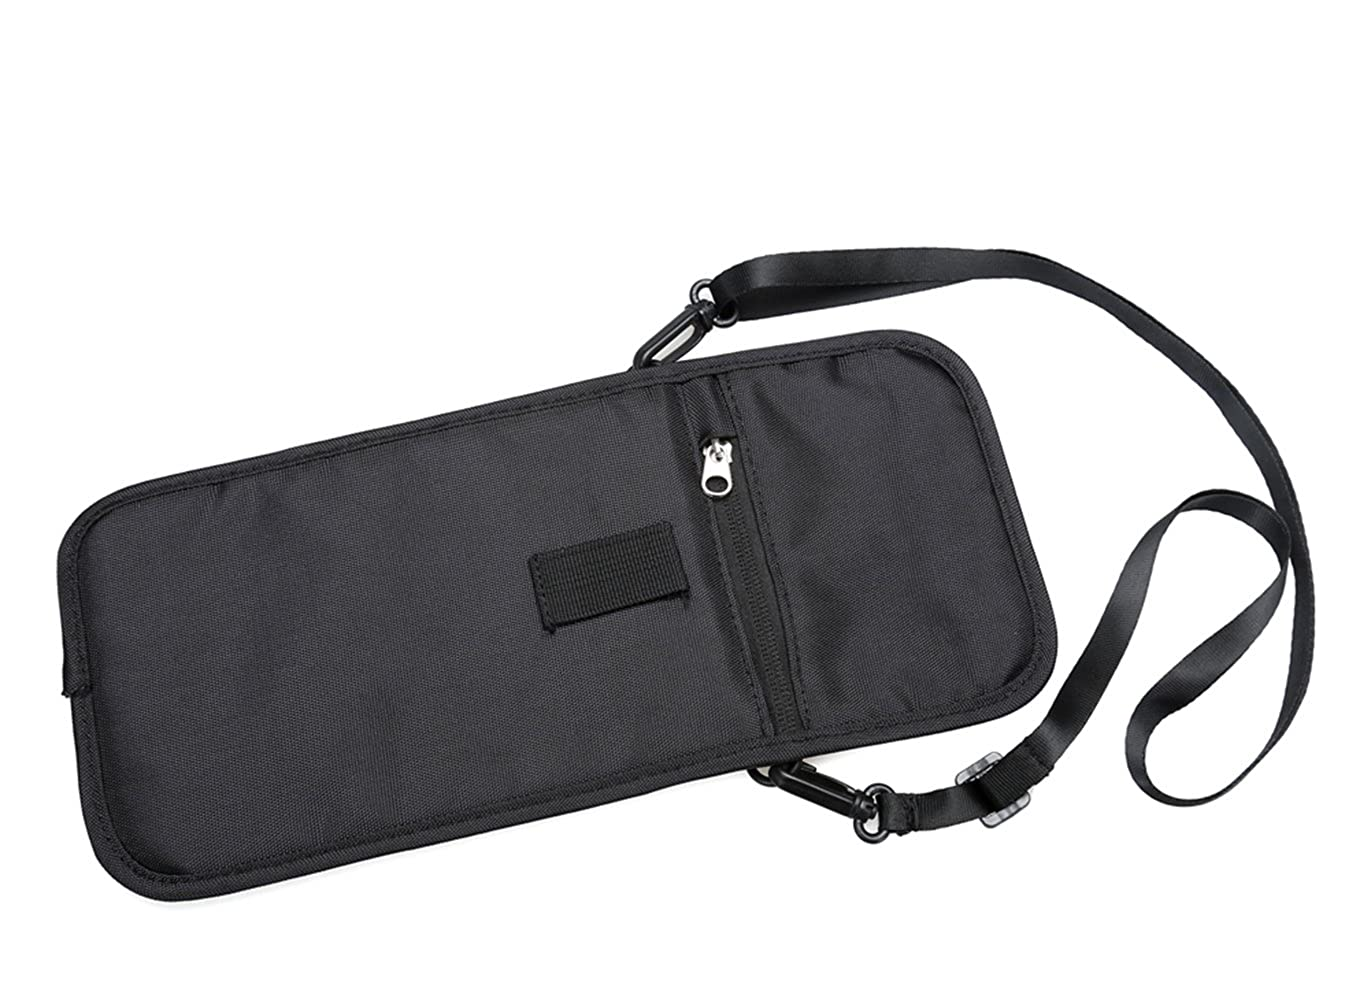 Travel Passport Holder Neck Wallet with RFID Blocking with zip and Hidden Wallet for Security